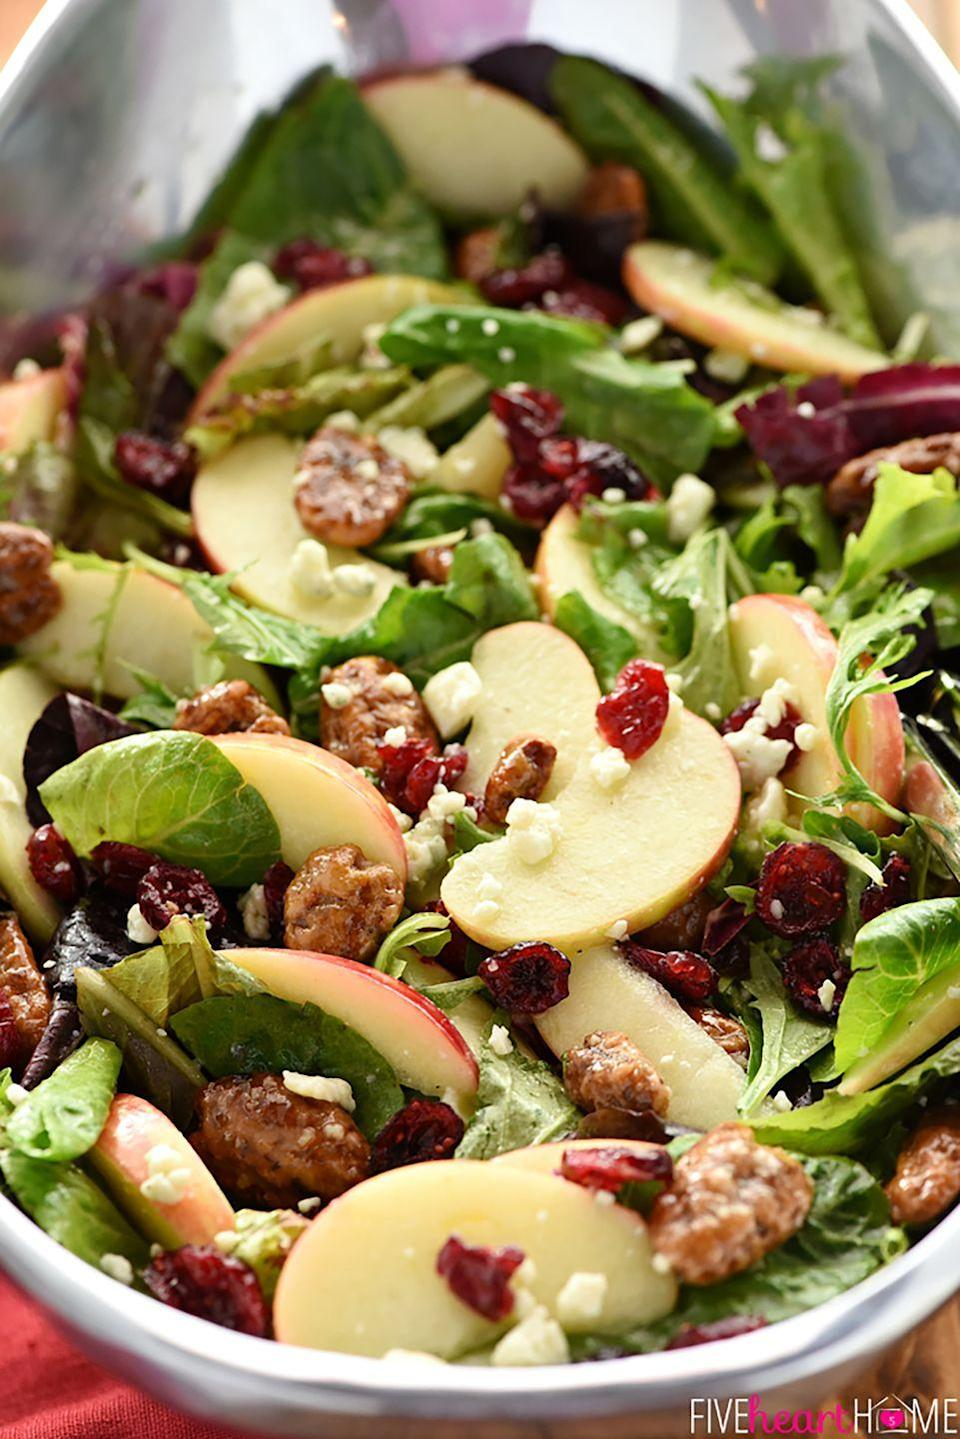 """<p>This hearty salad, made with Honeycrisp apple slices, crunchy candied pecans, chewy dried cranberries, salty blue cheese, and a tangy-sweet apple cider vinaigrette, is the perfect fuel for holiday festivities.</p><p><strong>Get the recipe at <a href=""""https://www.fivehearthome.com/holiday-honeycrisp-salad/#_a5y_p=4564774"""" rel=""""nofollow noopener"""" target=""""_blank"""" data-ylk=""""slk:Five Heart Home"""" class=""""link rapid-noclick-resp"""">Five Heart Home</a>.</strong></p>"""